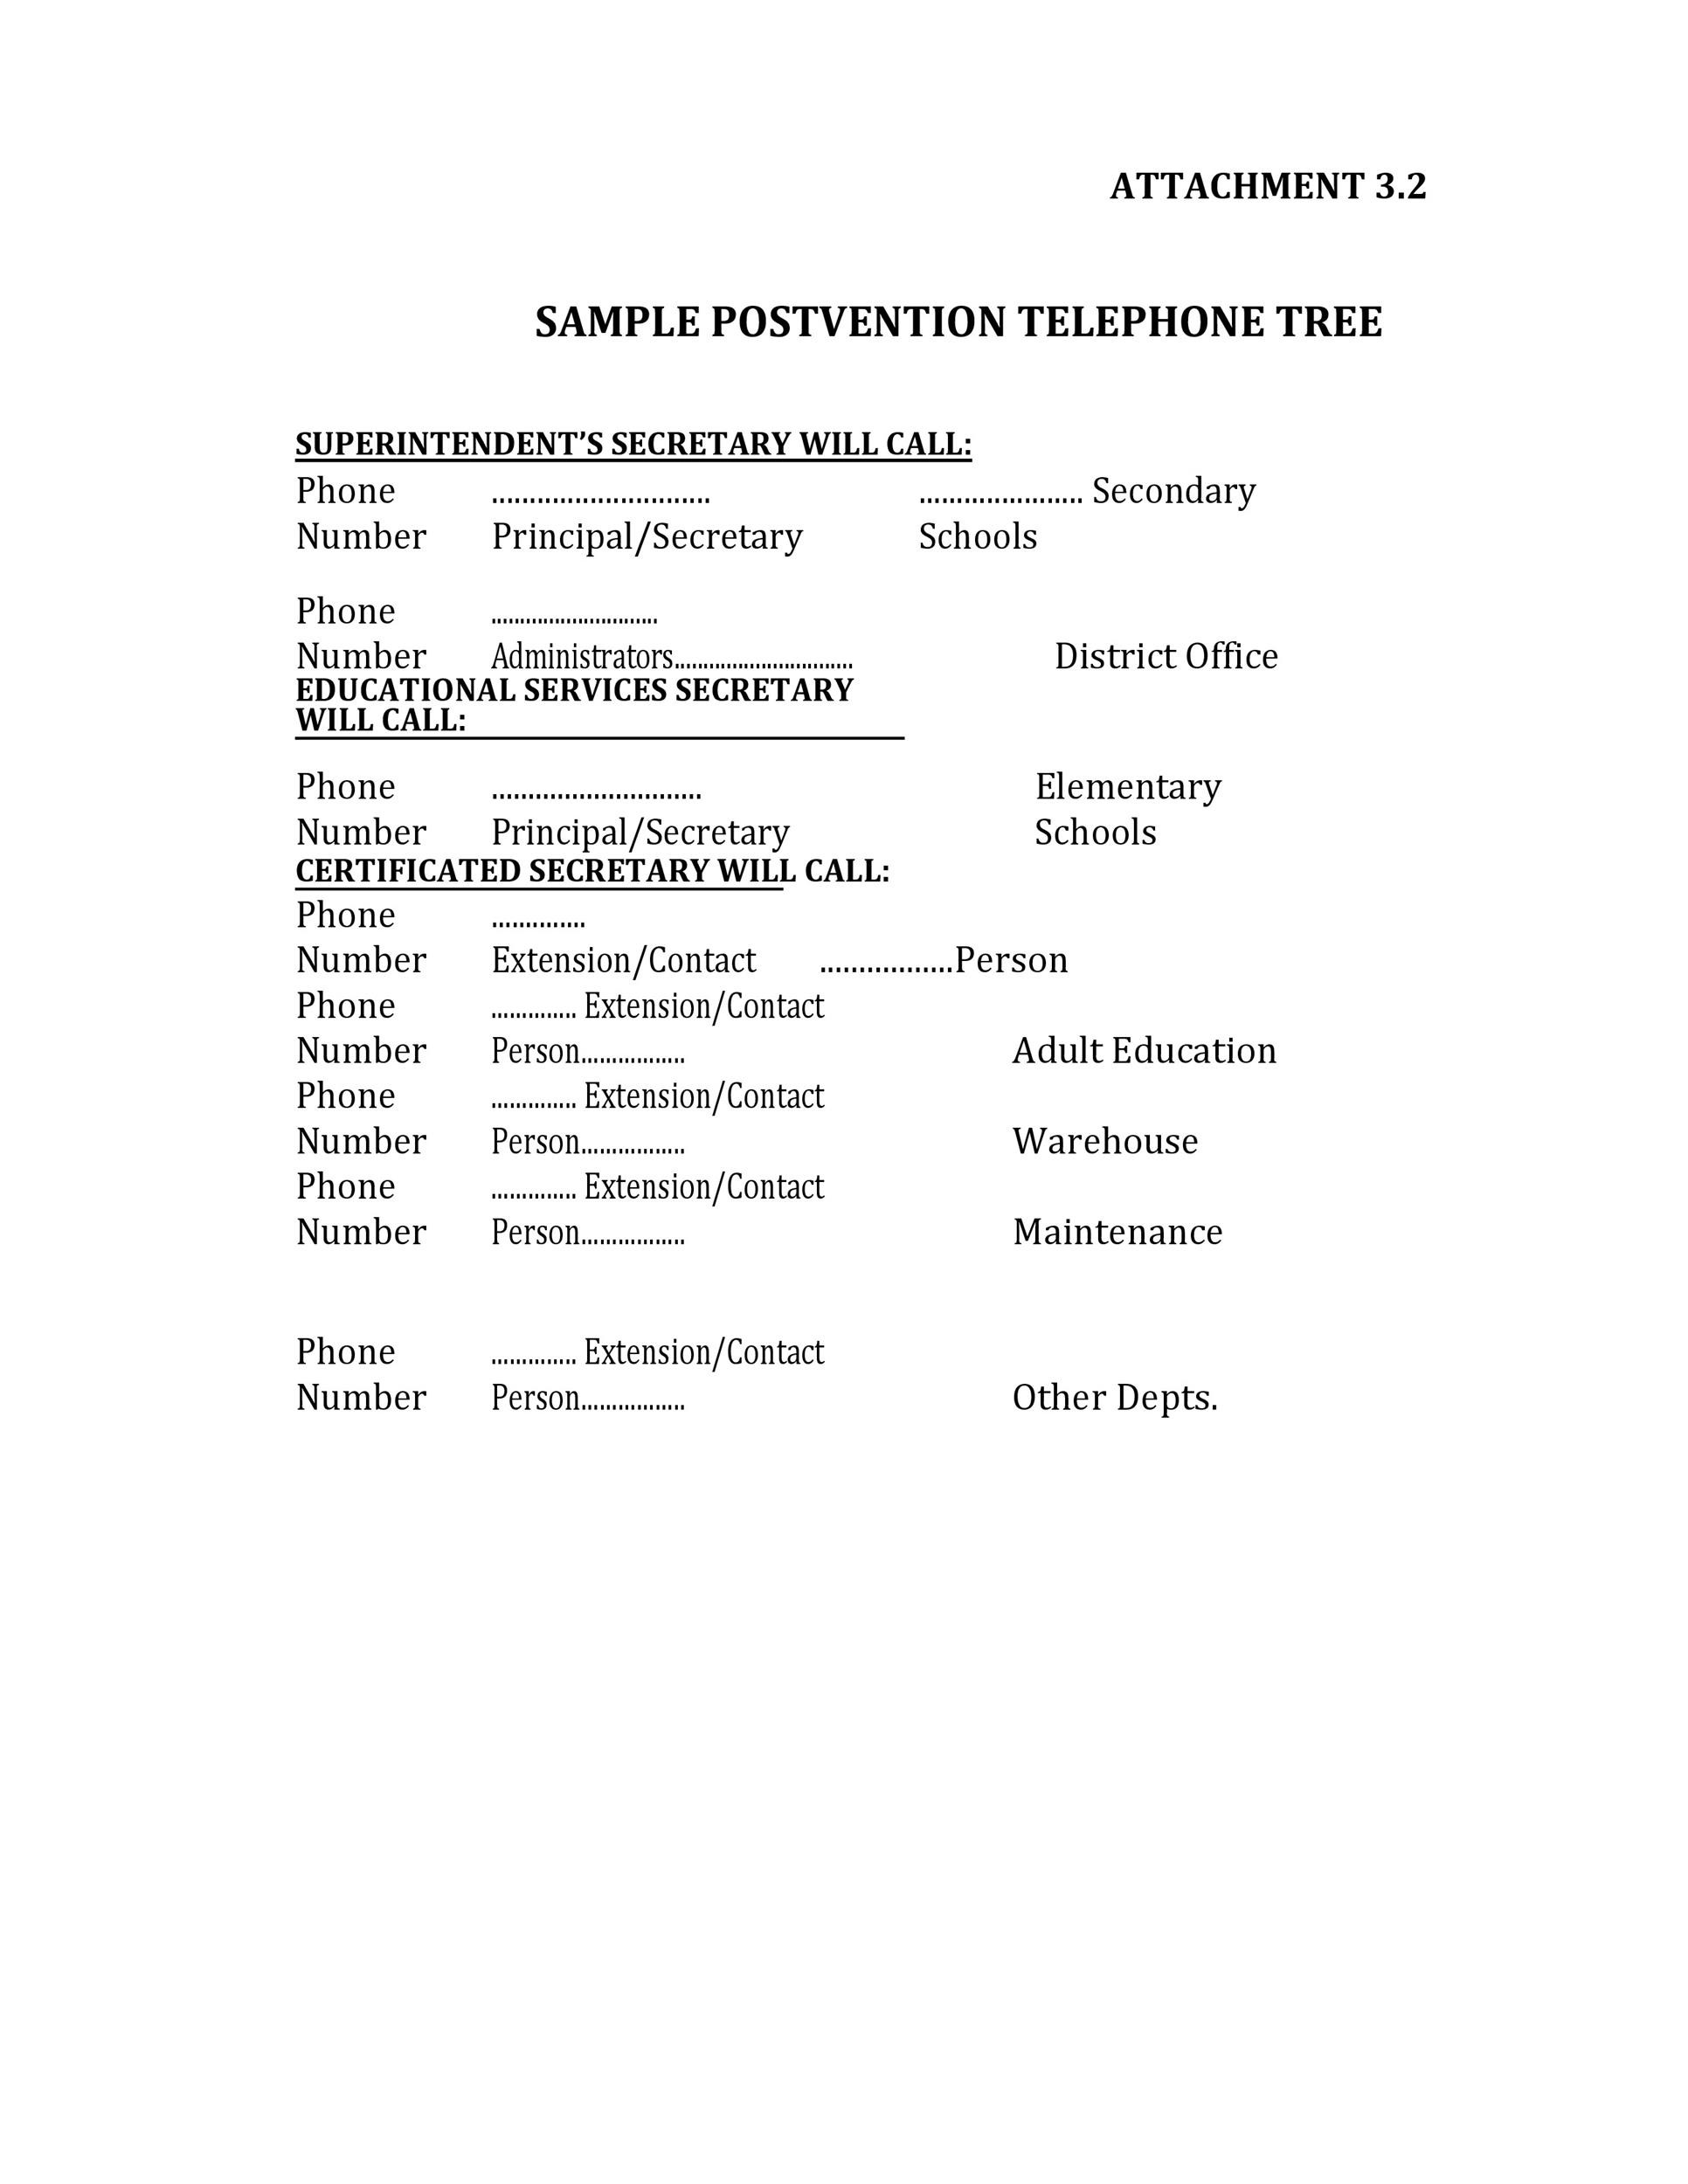 50 Free Phone Tree Templates (MS Word  Excel) ᐅ Template Lab